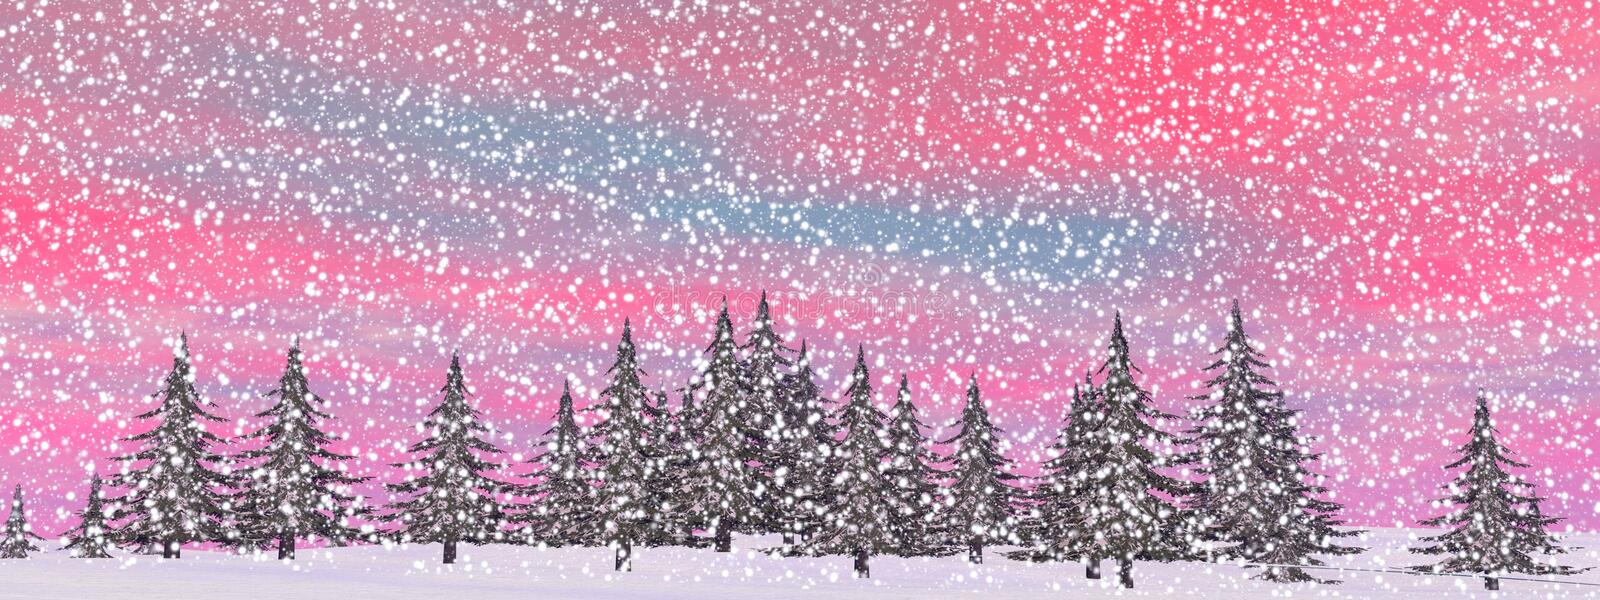 Winter snowing landscape - 3D render royalty free illustration